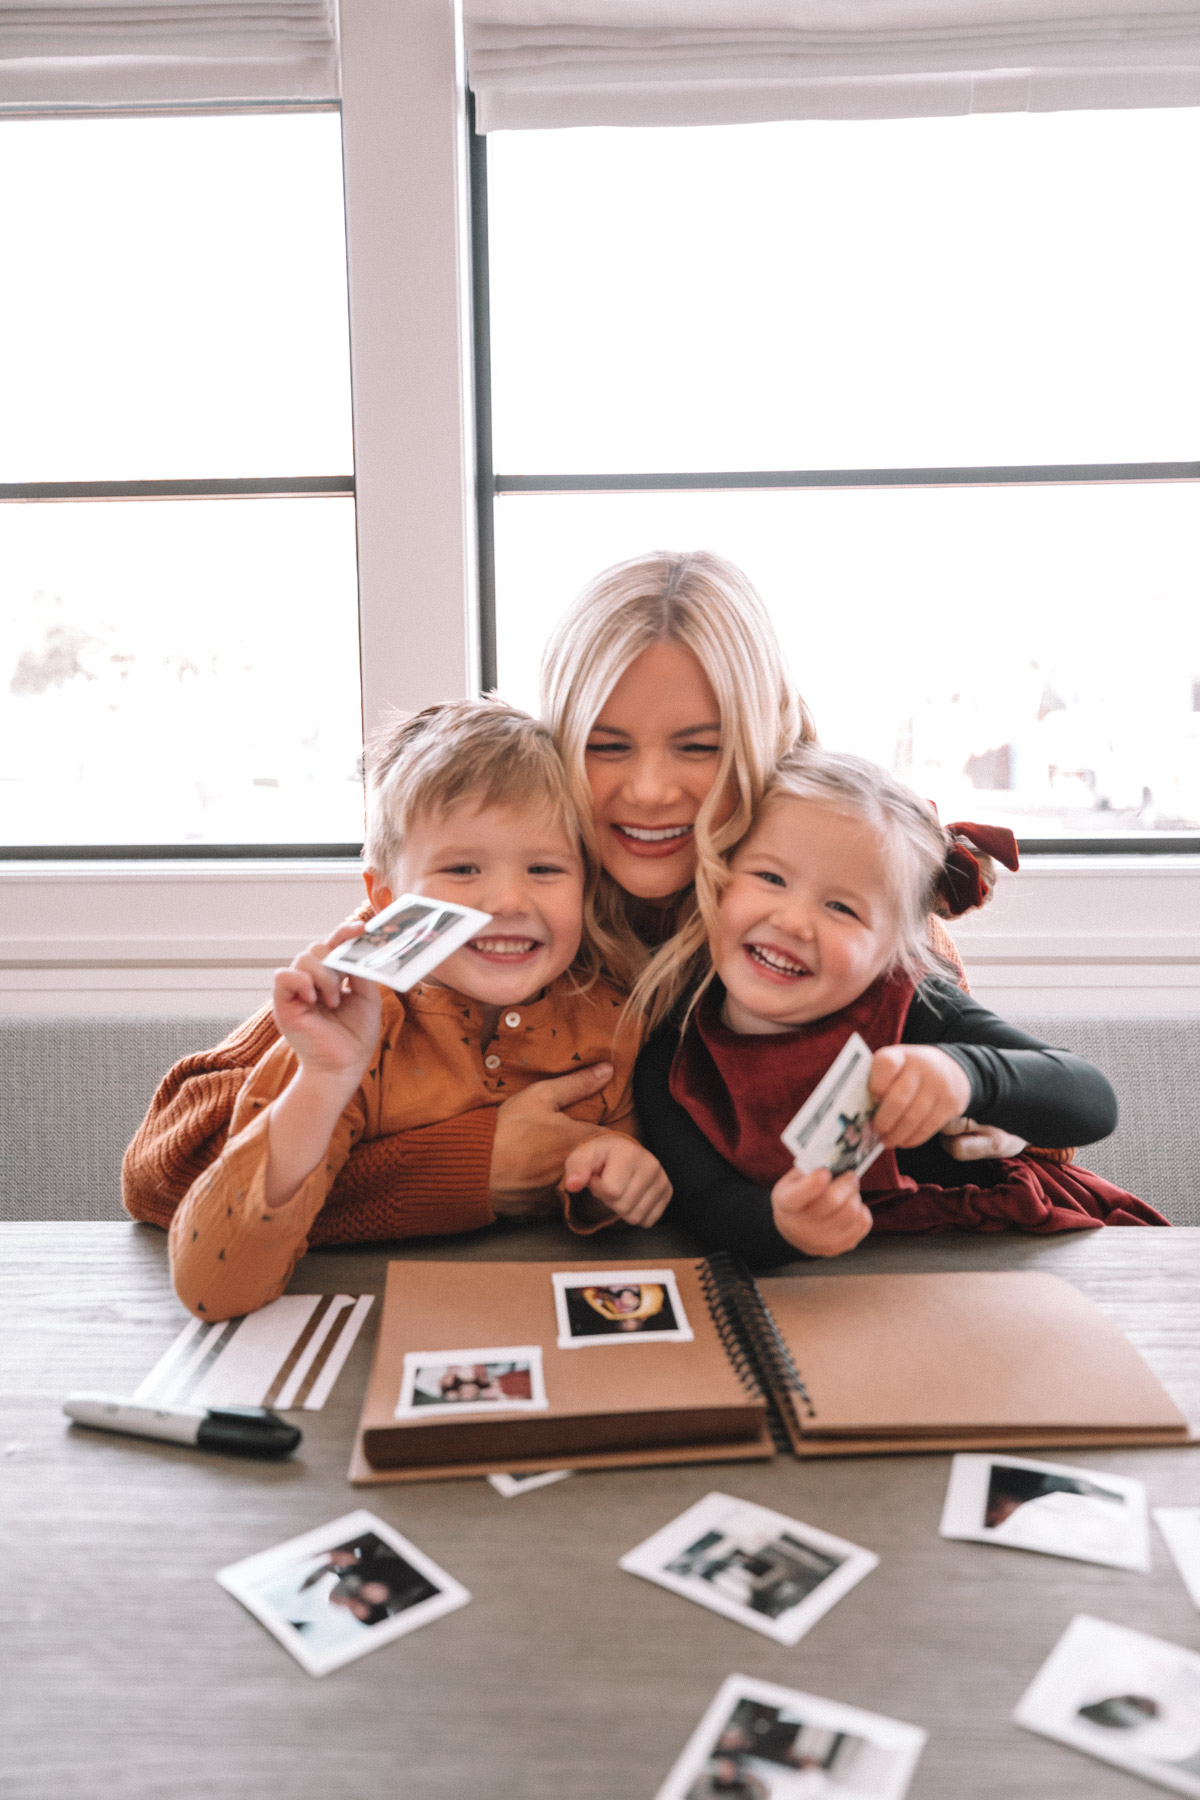 Atticus, Amber and Rosie scrapbooking with their Fujifilm camera prints. A Meaningful Gift for Grandma and Grandpa | Barefoot Blonde | Amber Fillerup Clark